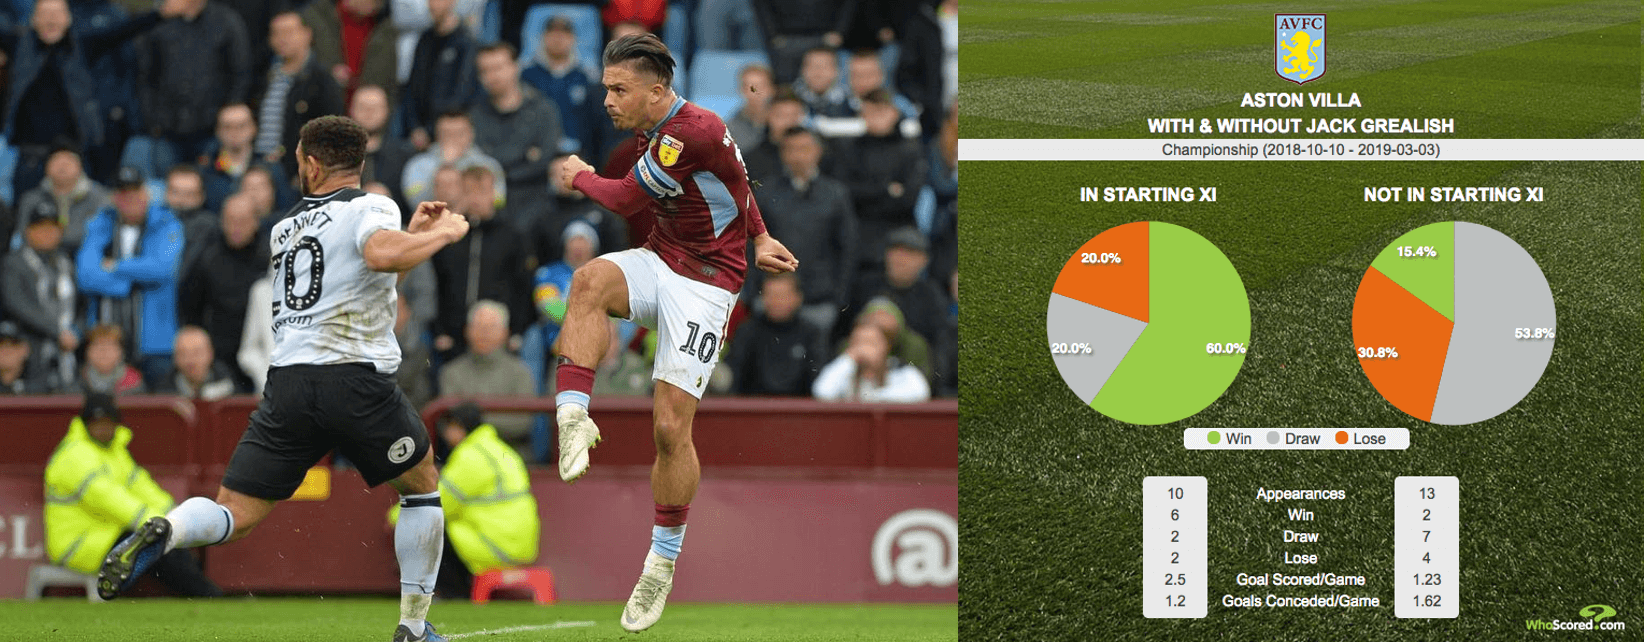 grealish stats this season